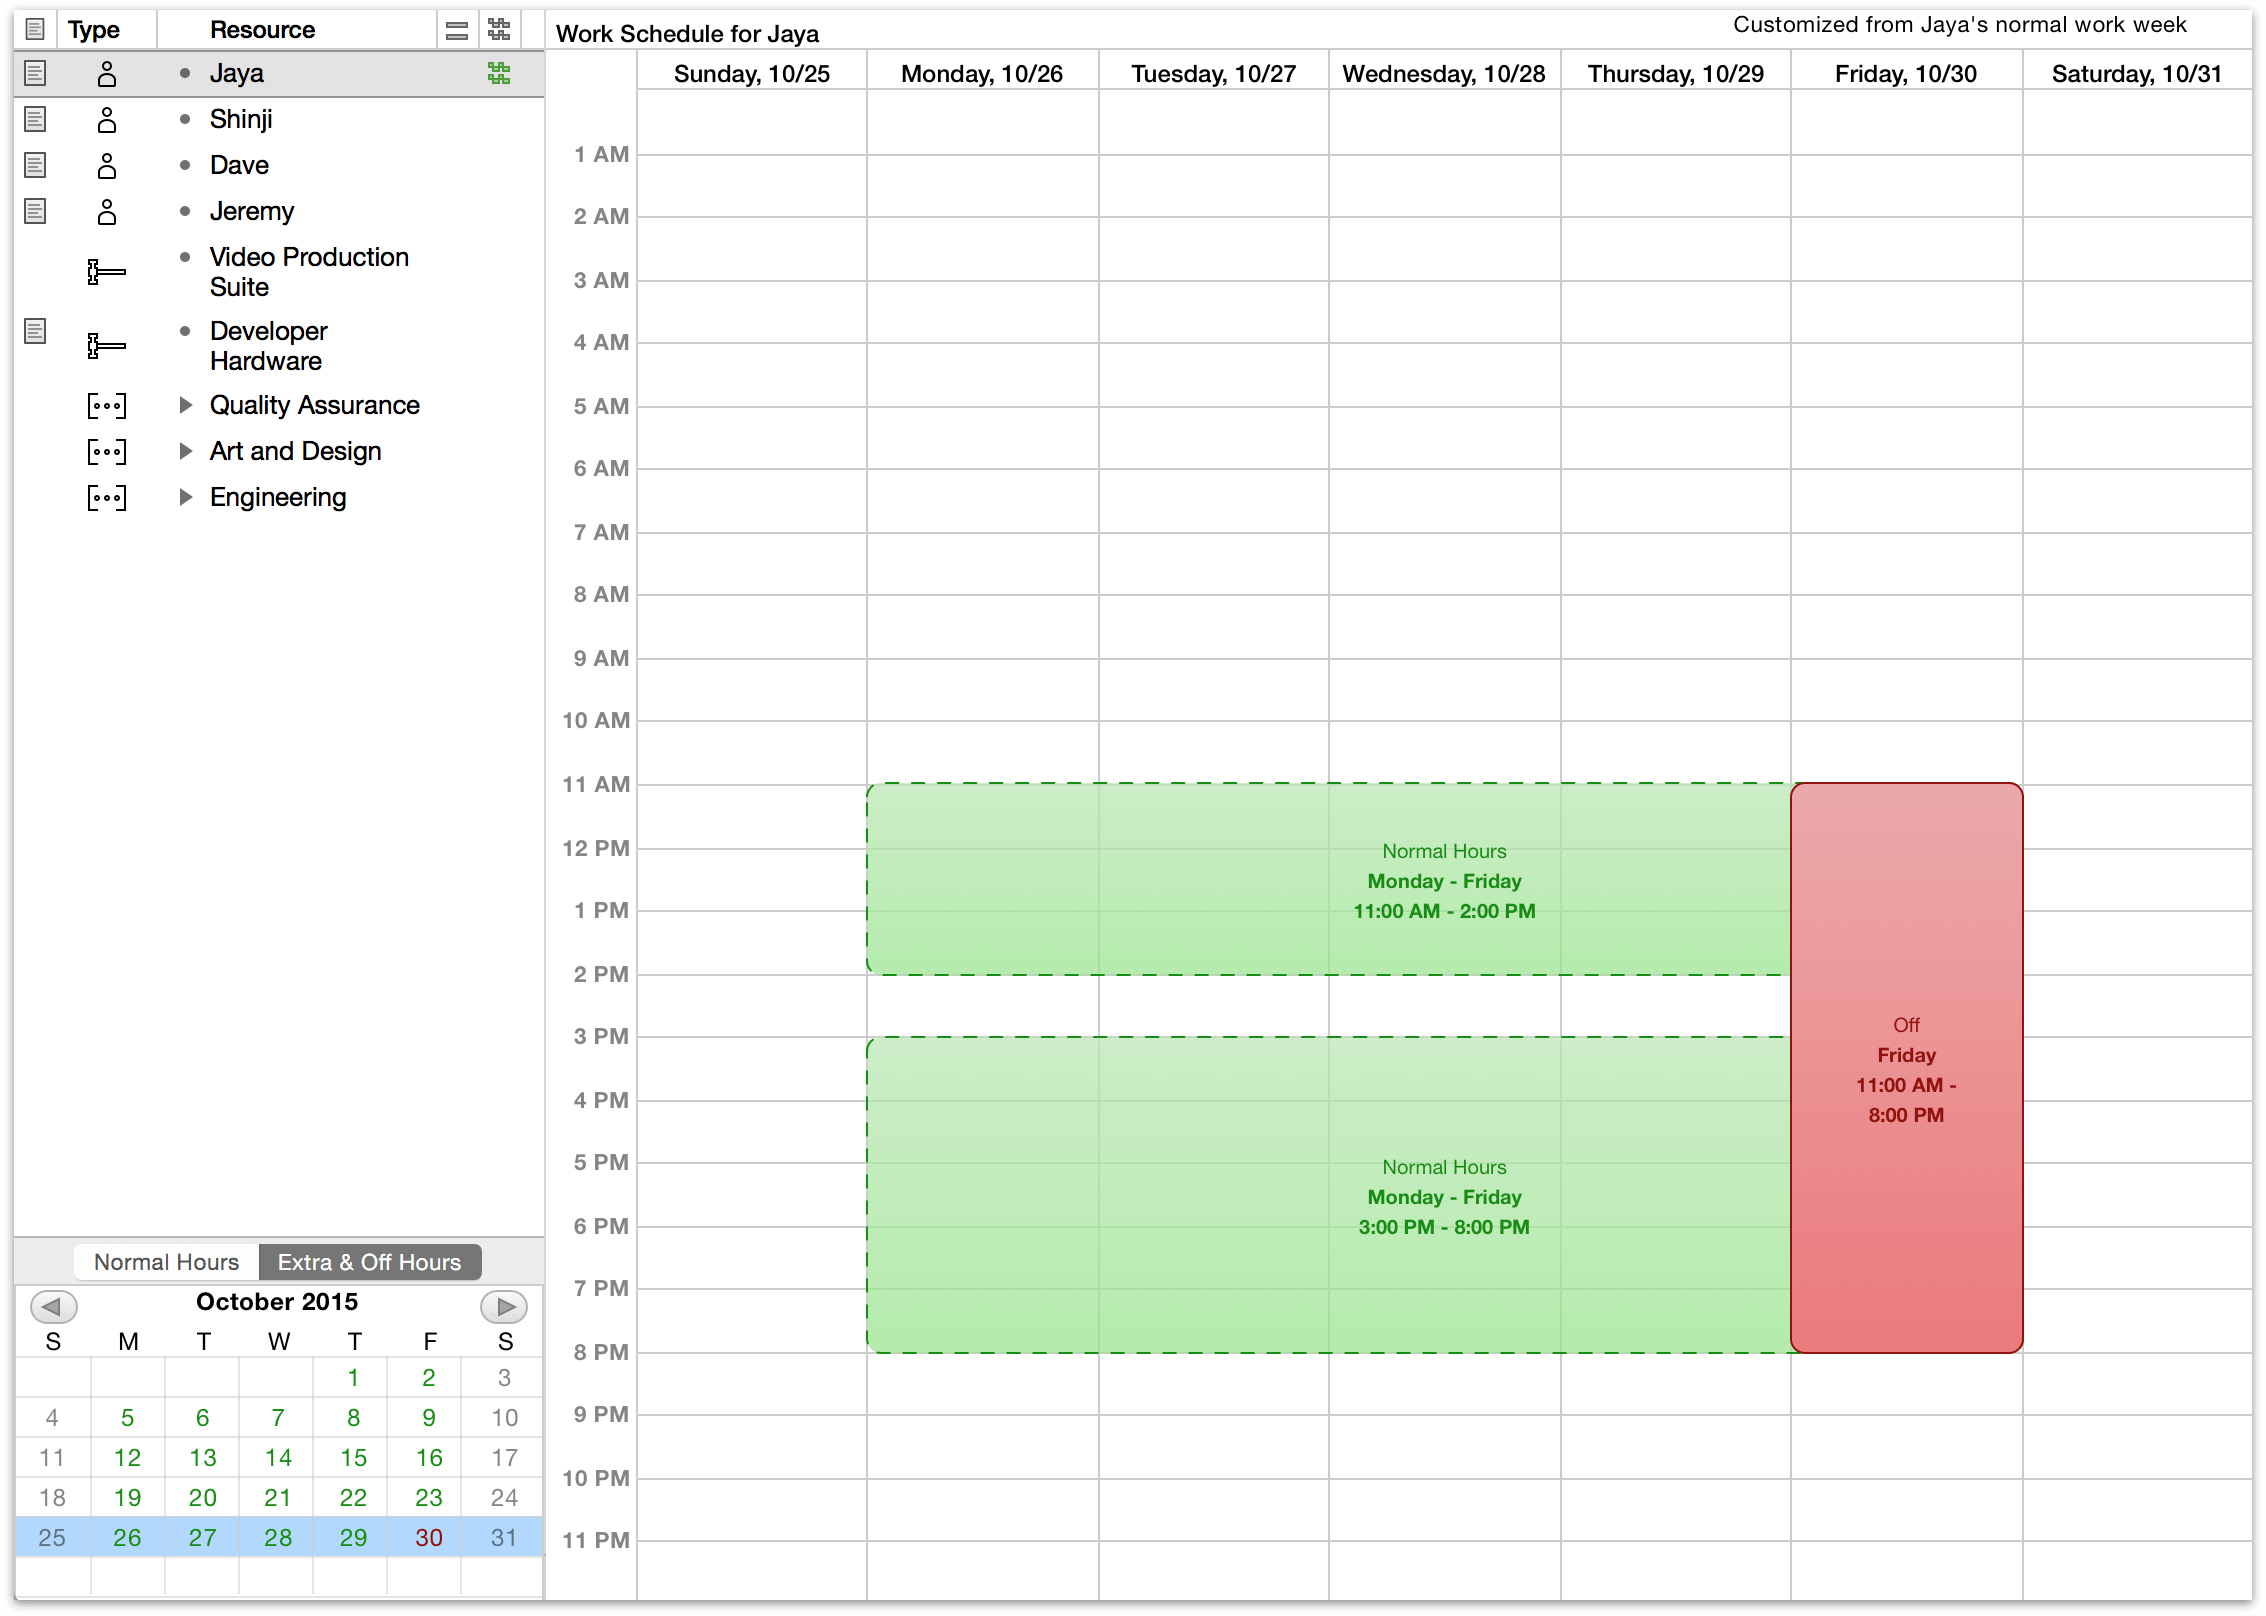 Editing the schedule exceptions for a single resource.